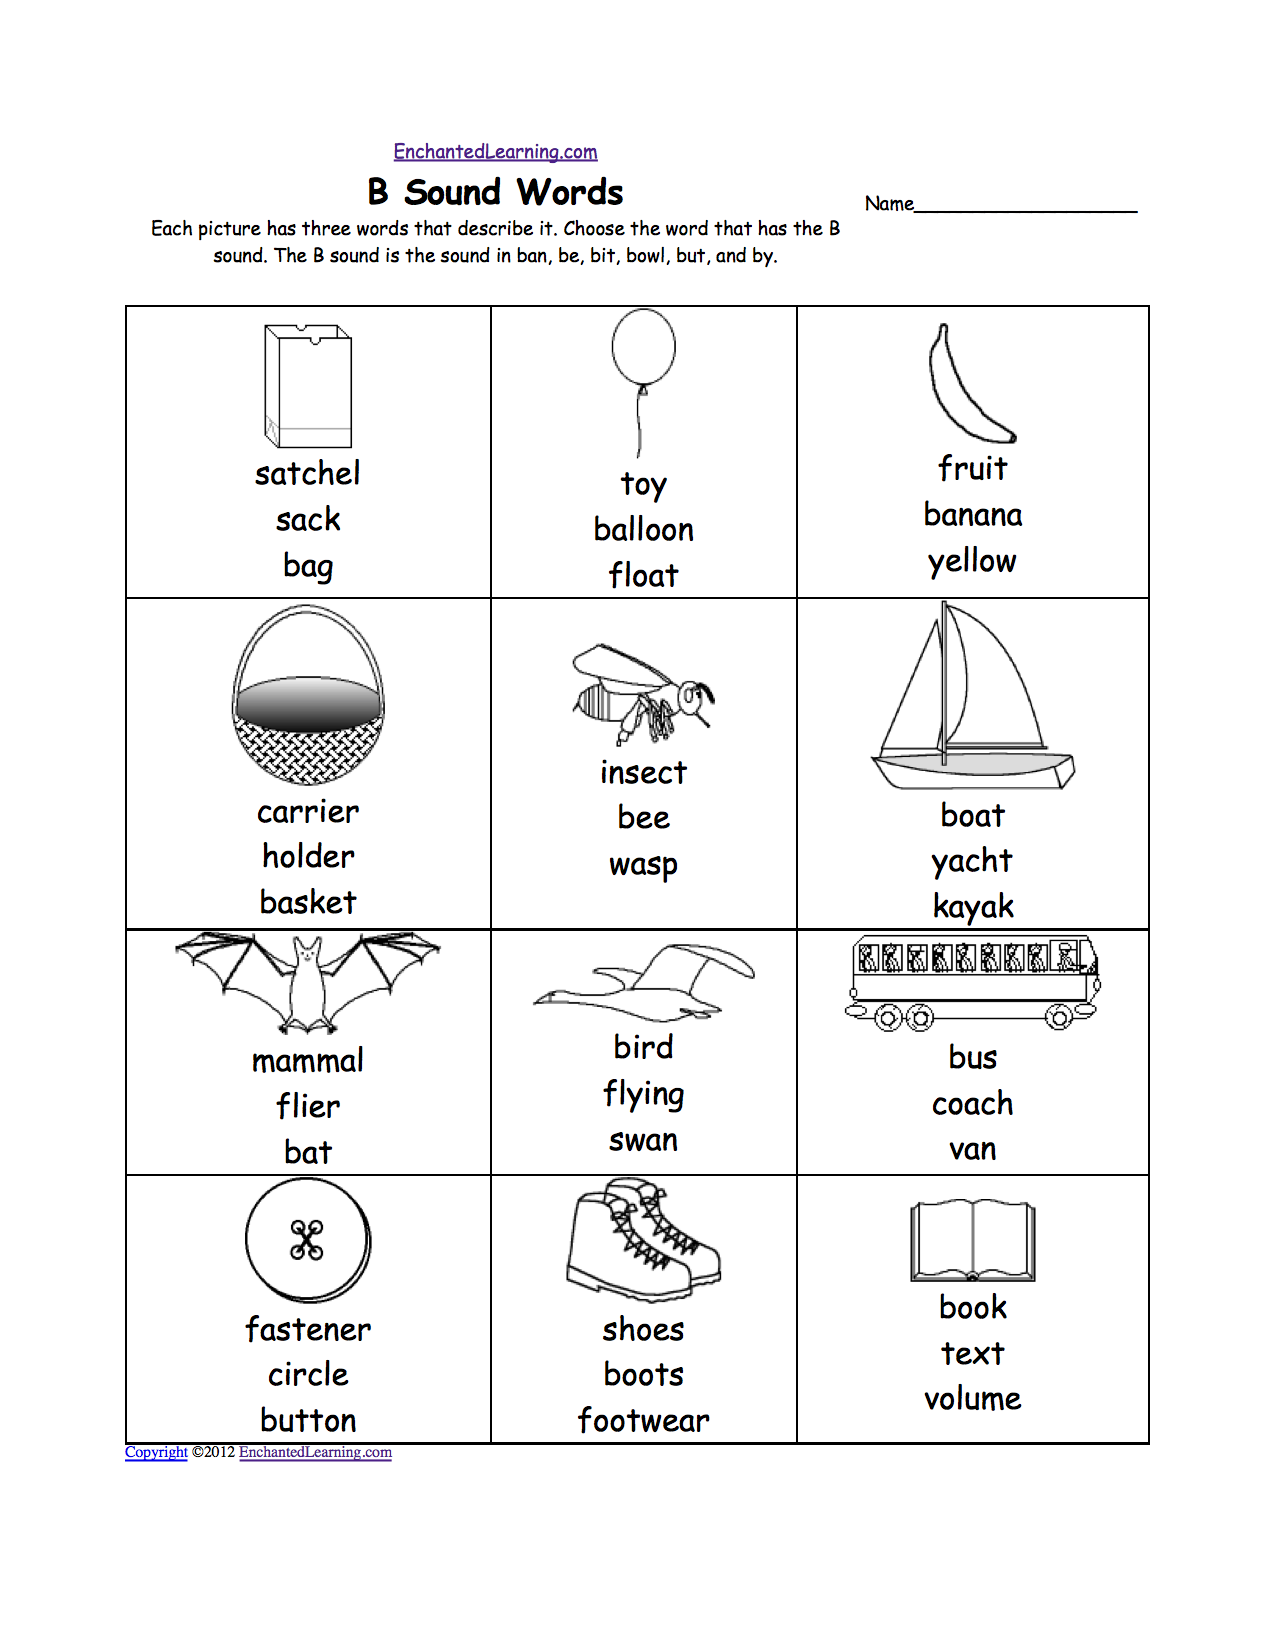 Weirdmailus  Remarkable Phonics Worksheets Multiple Choice Worksheets To Print  With Foxy Quotbquot Sound Phonics Worksheet Multiple Choice Each Picture Has Three Words That Describe It Choose The Word That Has A Quotbquot Sound The Quotbquot Sound Is The Sound  With Alluring Printable Wedding Budget Worksheet Also Grammar Sentences Worksheet In Addition Practice Writing A B C Worksheets And Cut And Paste Sentence Worksheets As Well As Area And Perimeter Practice Worksheets Additionally Multiplication Worksheets For Rd Graders From Enchantedlearningcom With Weirdmailus  Foxy Phonics Worksheets Multiple Choice Worksheets To Print  With Alluring Quotbquot Sound Phonics Worksheet Multiple Choice Each Picture Has Three Words That Describe It Choose The Word That Has A Quotbquot Sound The Quotbquot Sound Is The Sound  And Remarkable Printable Wedding Budget Worksheet Also Grammar Sentences Worksheet In Addition Practice Writing A B C Worksheets From Enchantedlearningcom